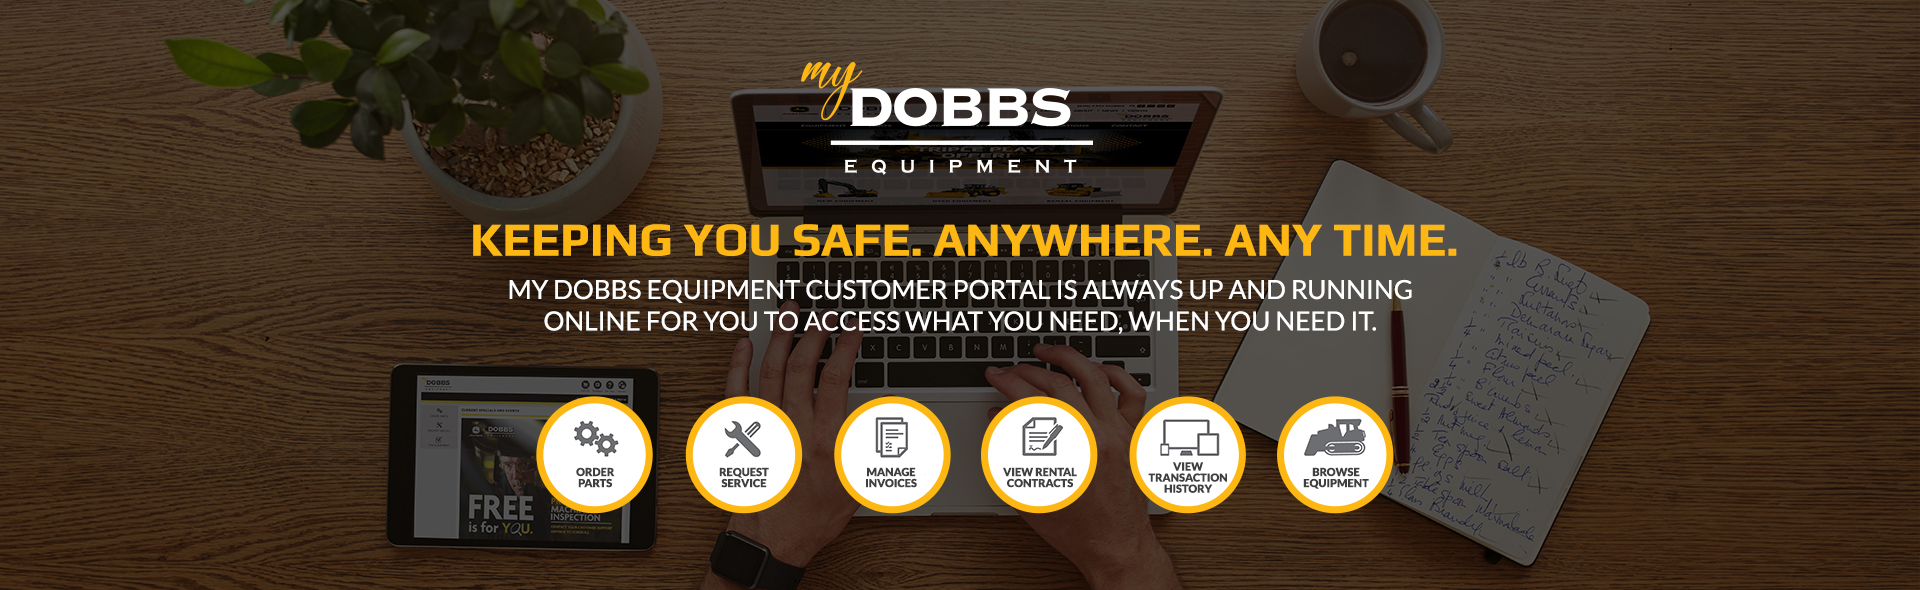 Keeping you safe. Anywhere. Anytime. My Dobbs Equipment customer portal is always up and running online for you to access what you need, when you need it.